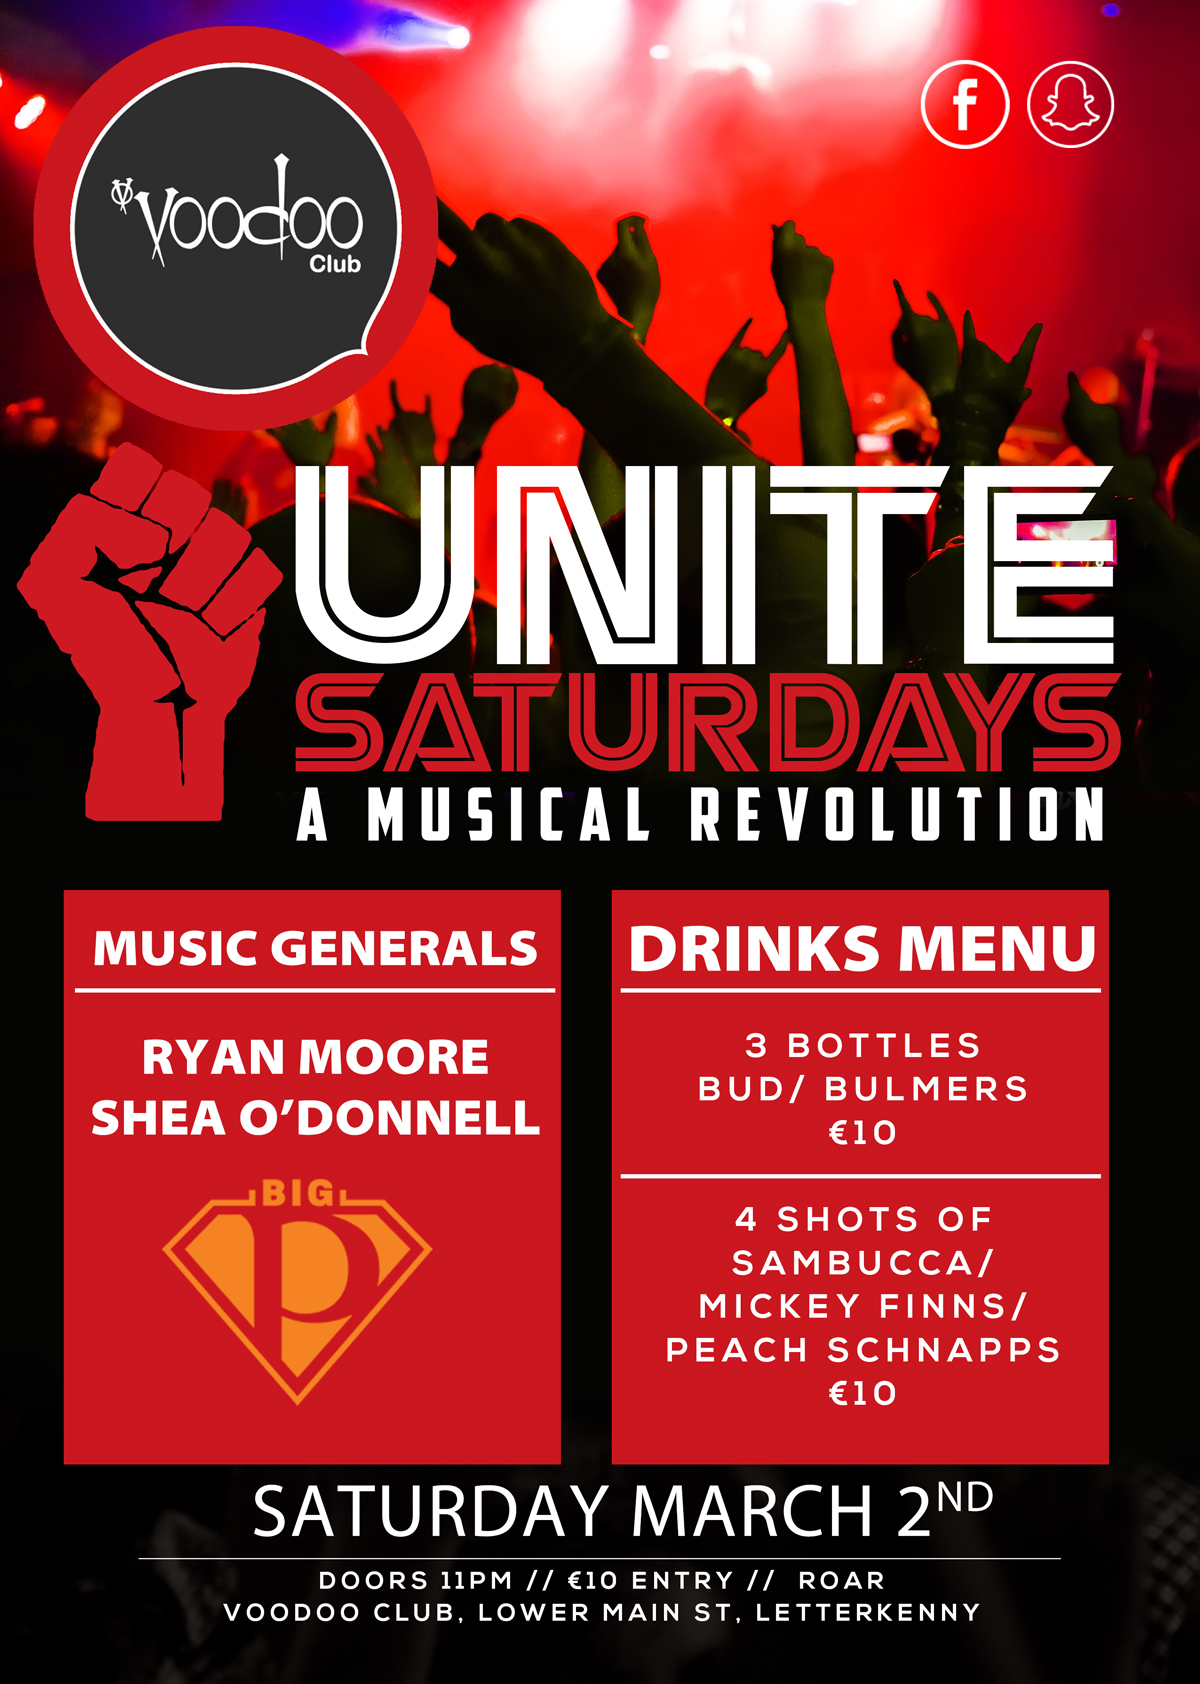 voodoo-venue---unite-saturdays-sat-mar-2-2019.jpg